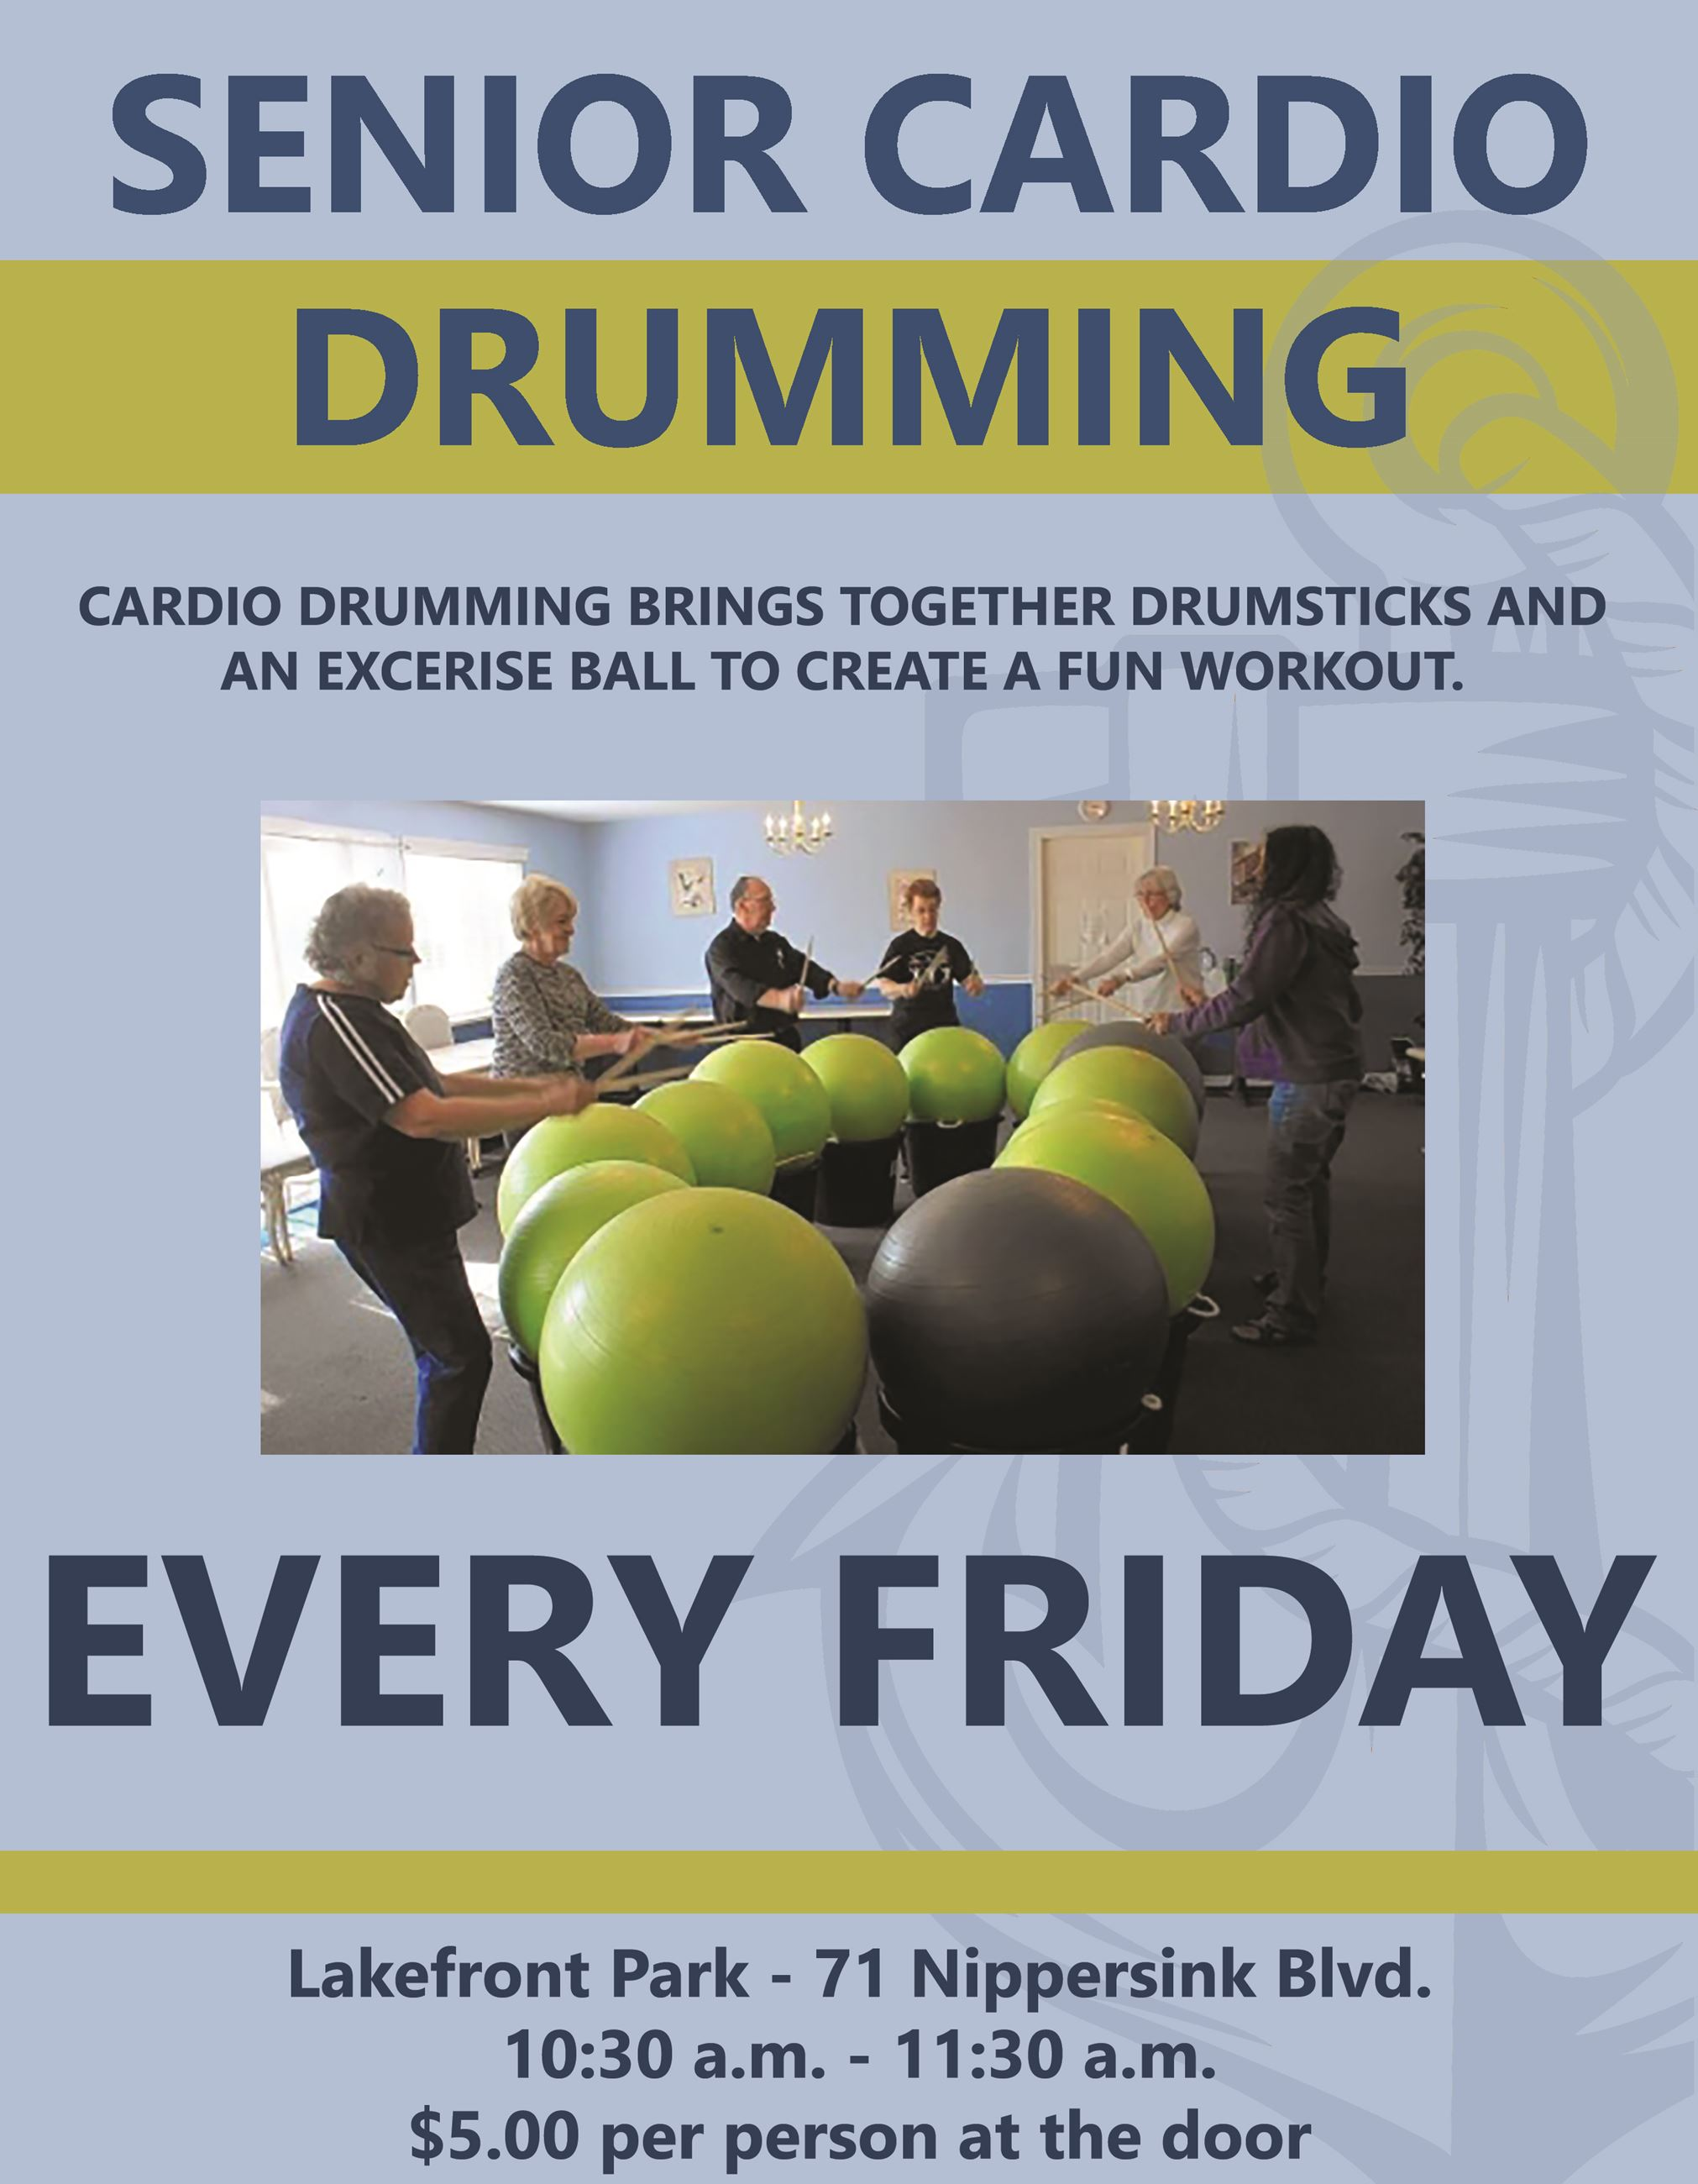 CARDIO DRUMMING FRIDAY